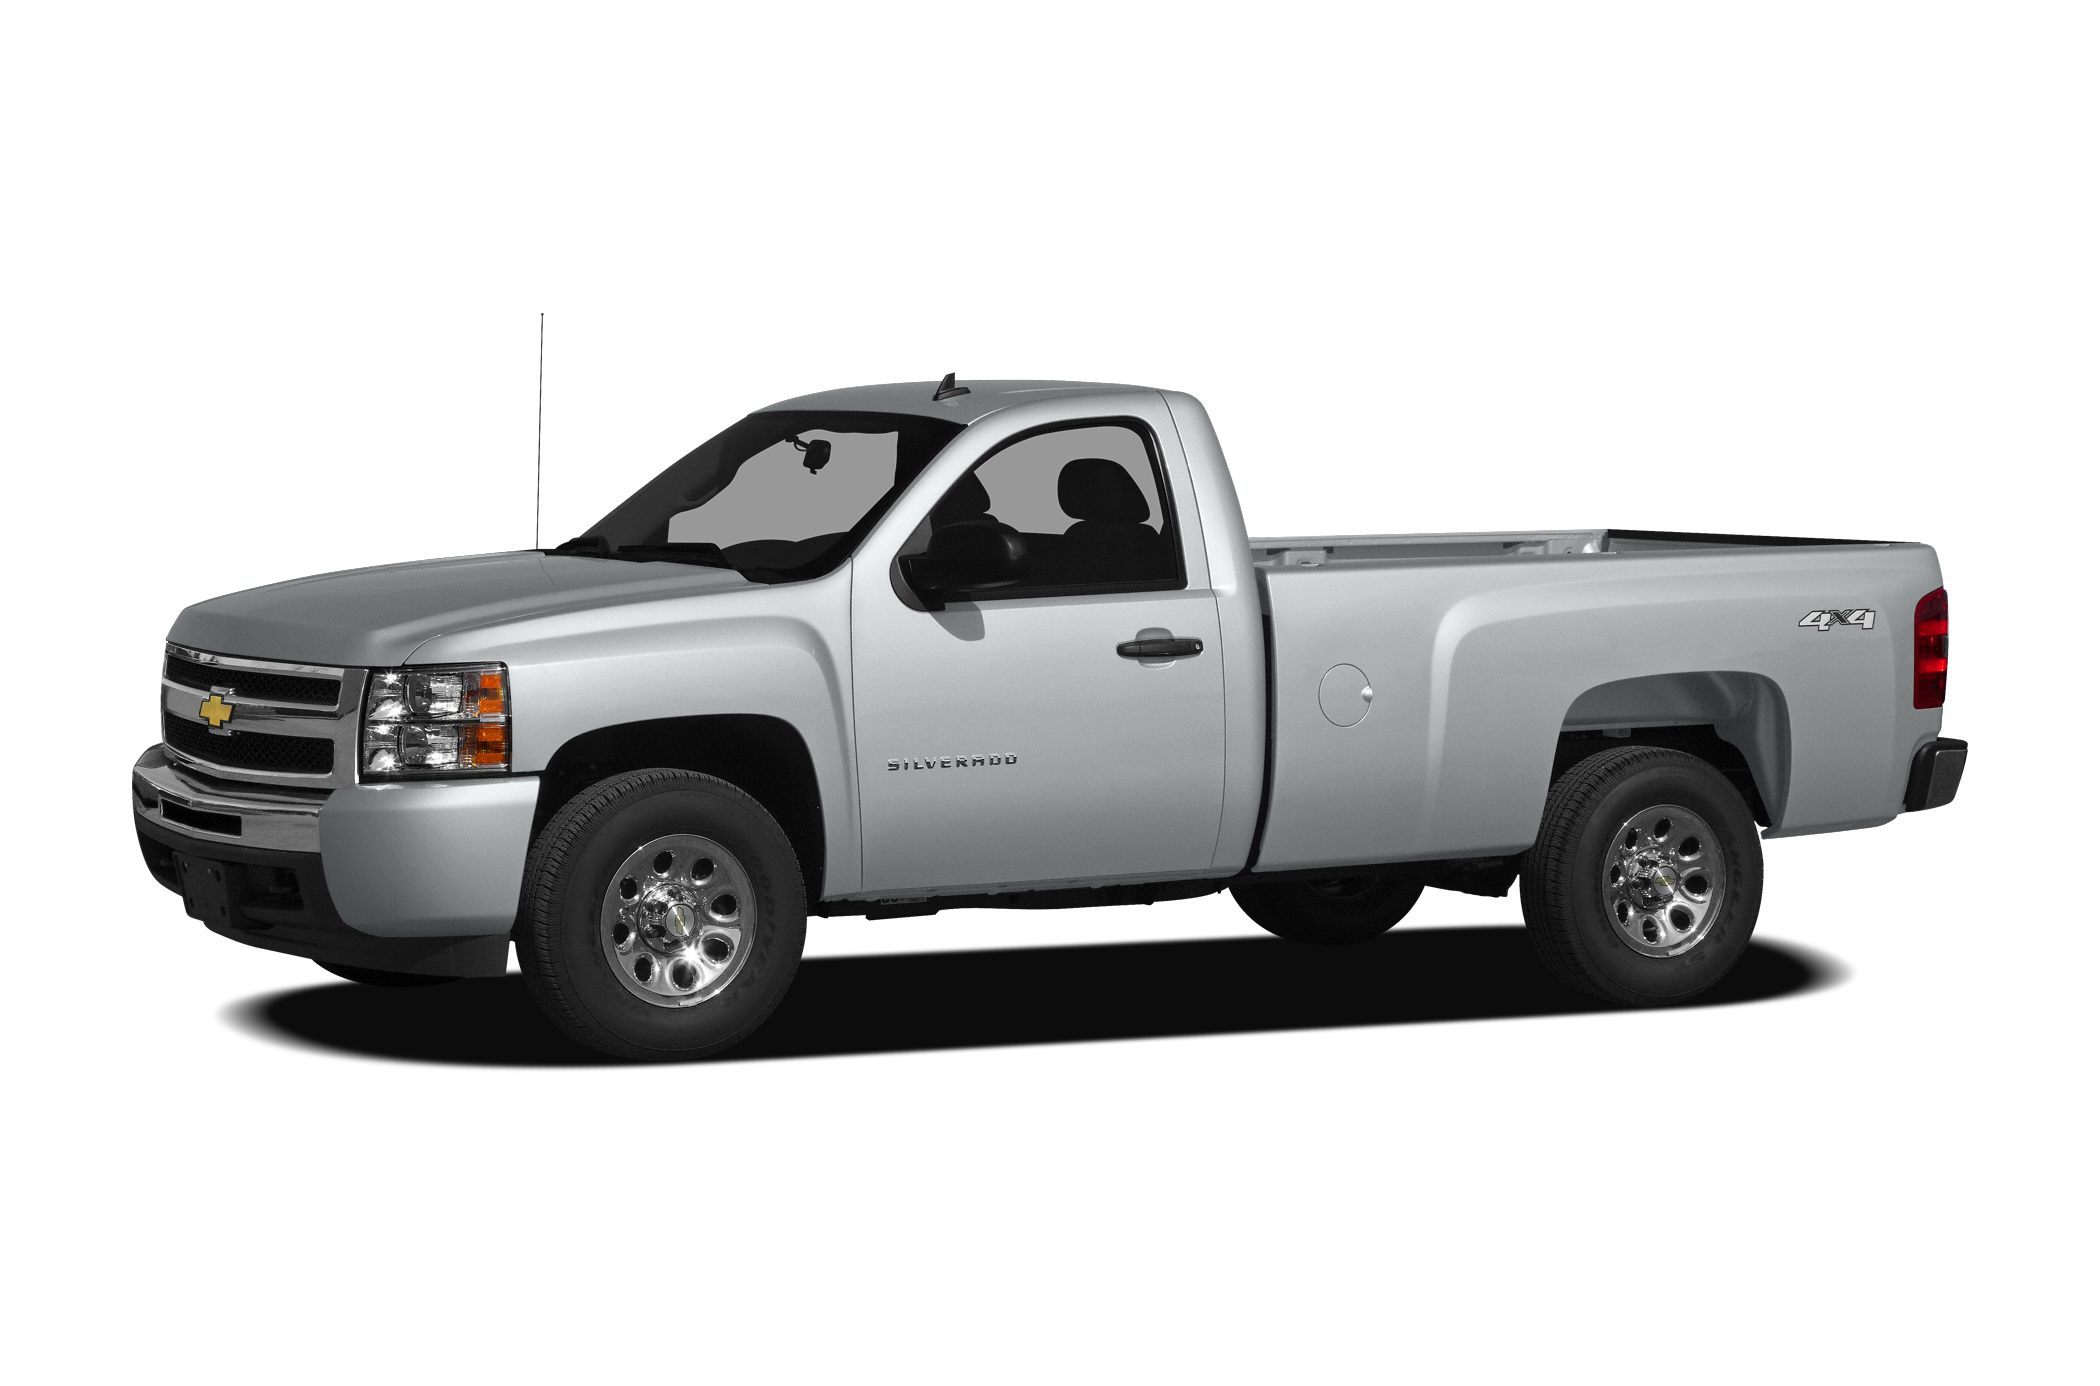 2010 Chevrolet Silverado 1500 WT Your lucky day Youll NEVER pay too much at David Stanley Norman